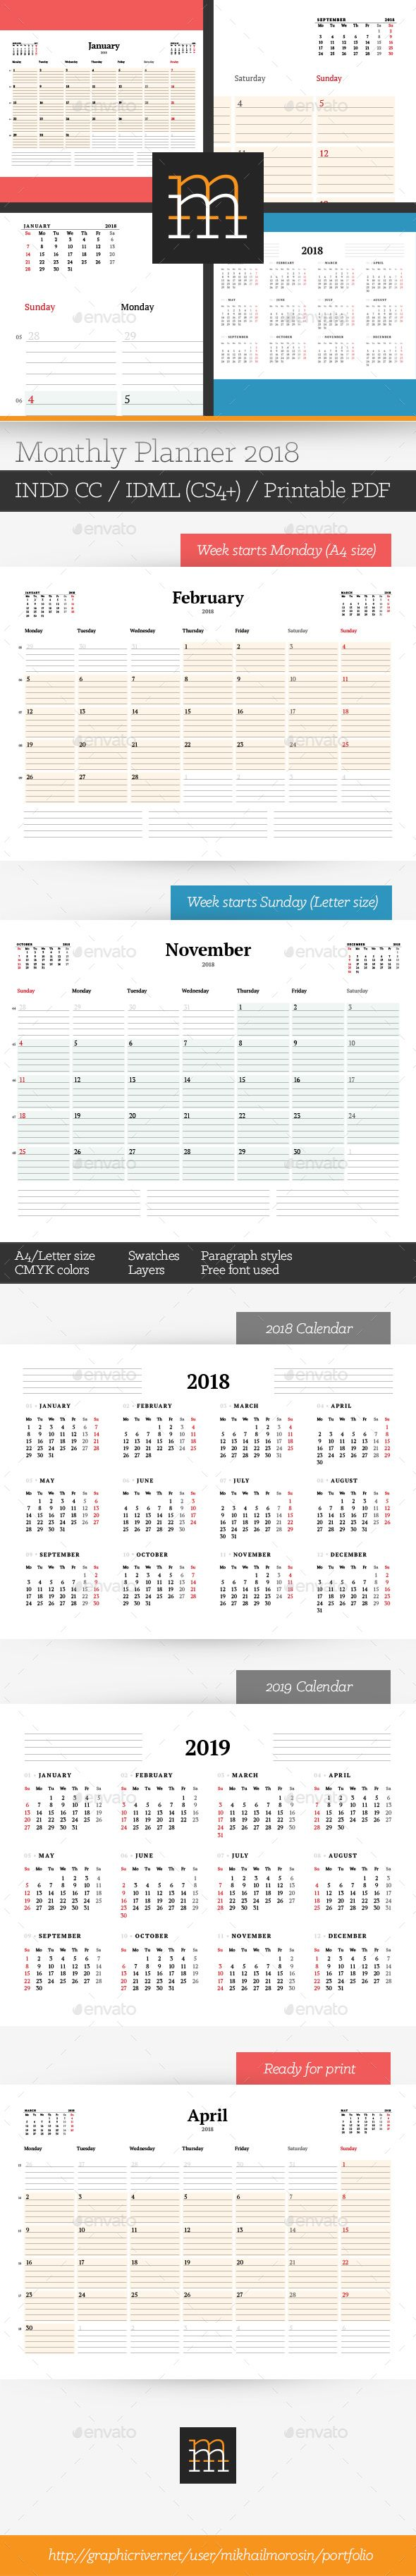 Weekly Calendar Indesign Template : Best ideas about monthly planner template on pinterest